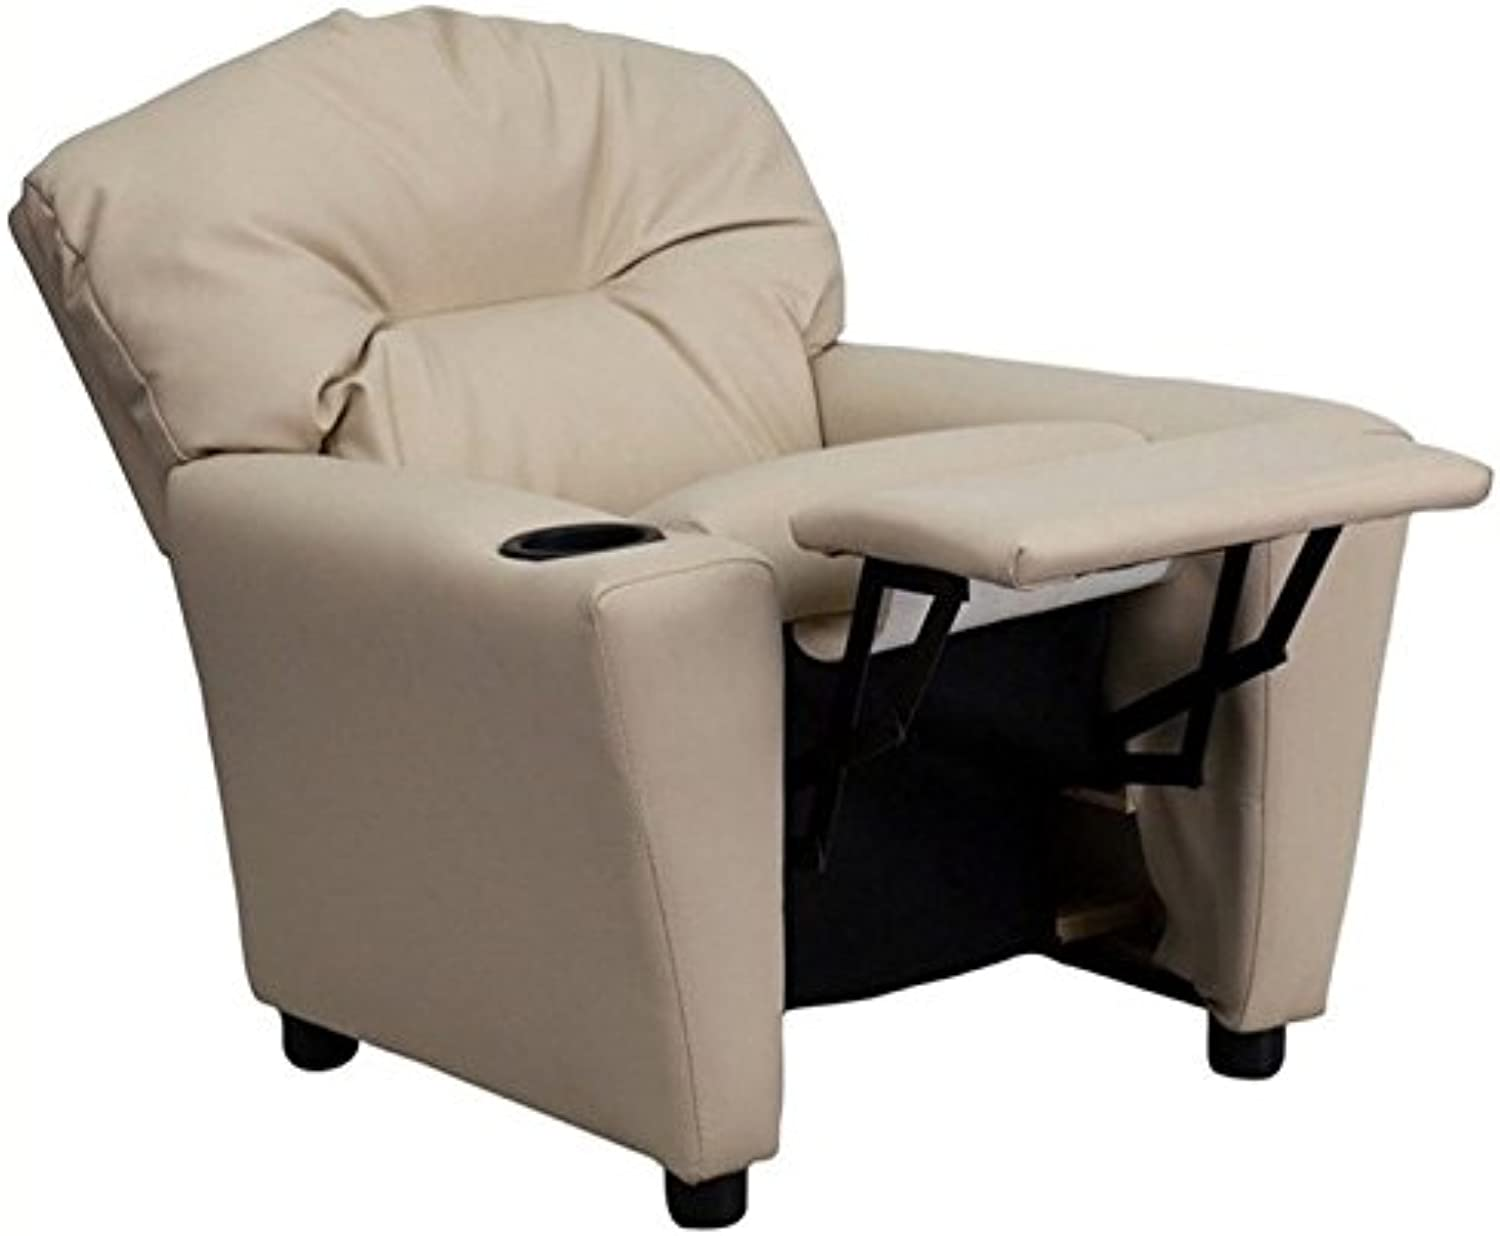 Bowery Hill Kids Recliner in Beige with Cup Holder